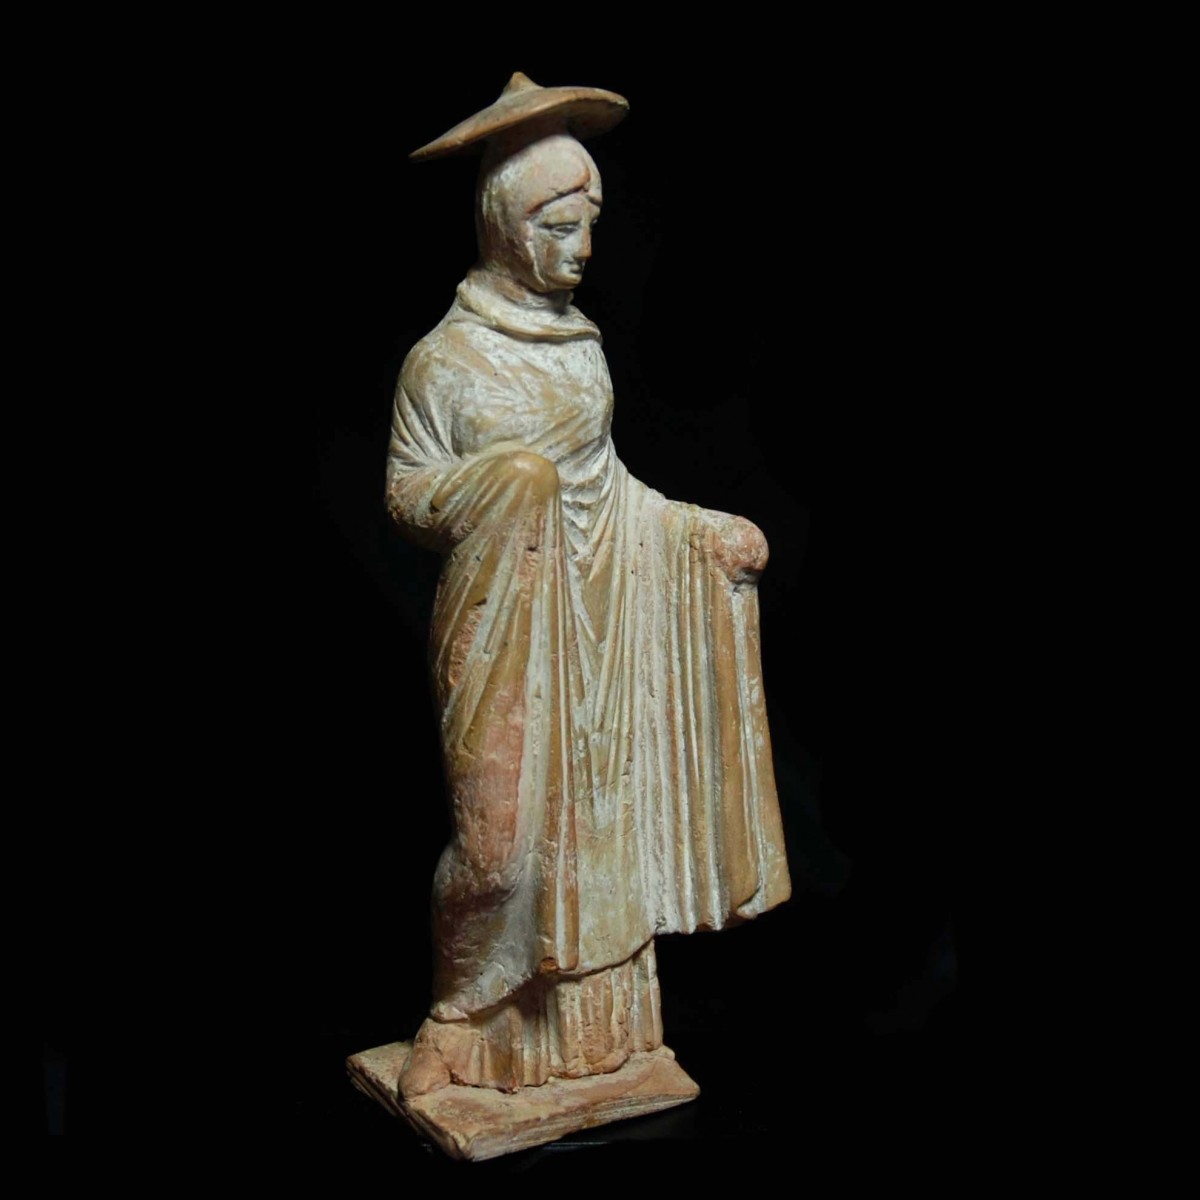 Tanagra statuette of a woman with sun hat half right